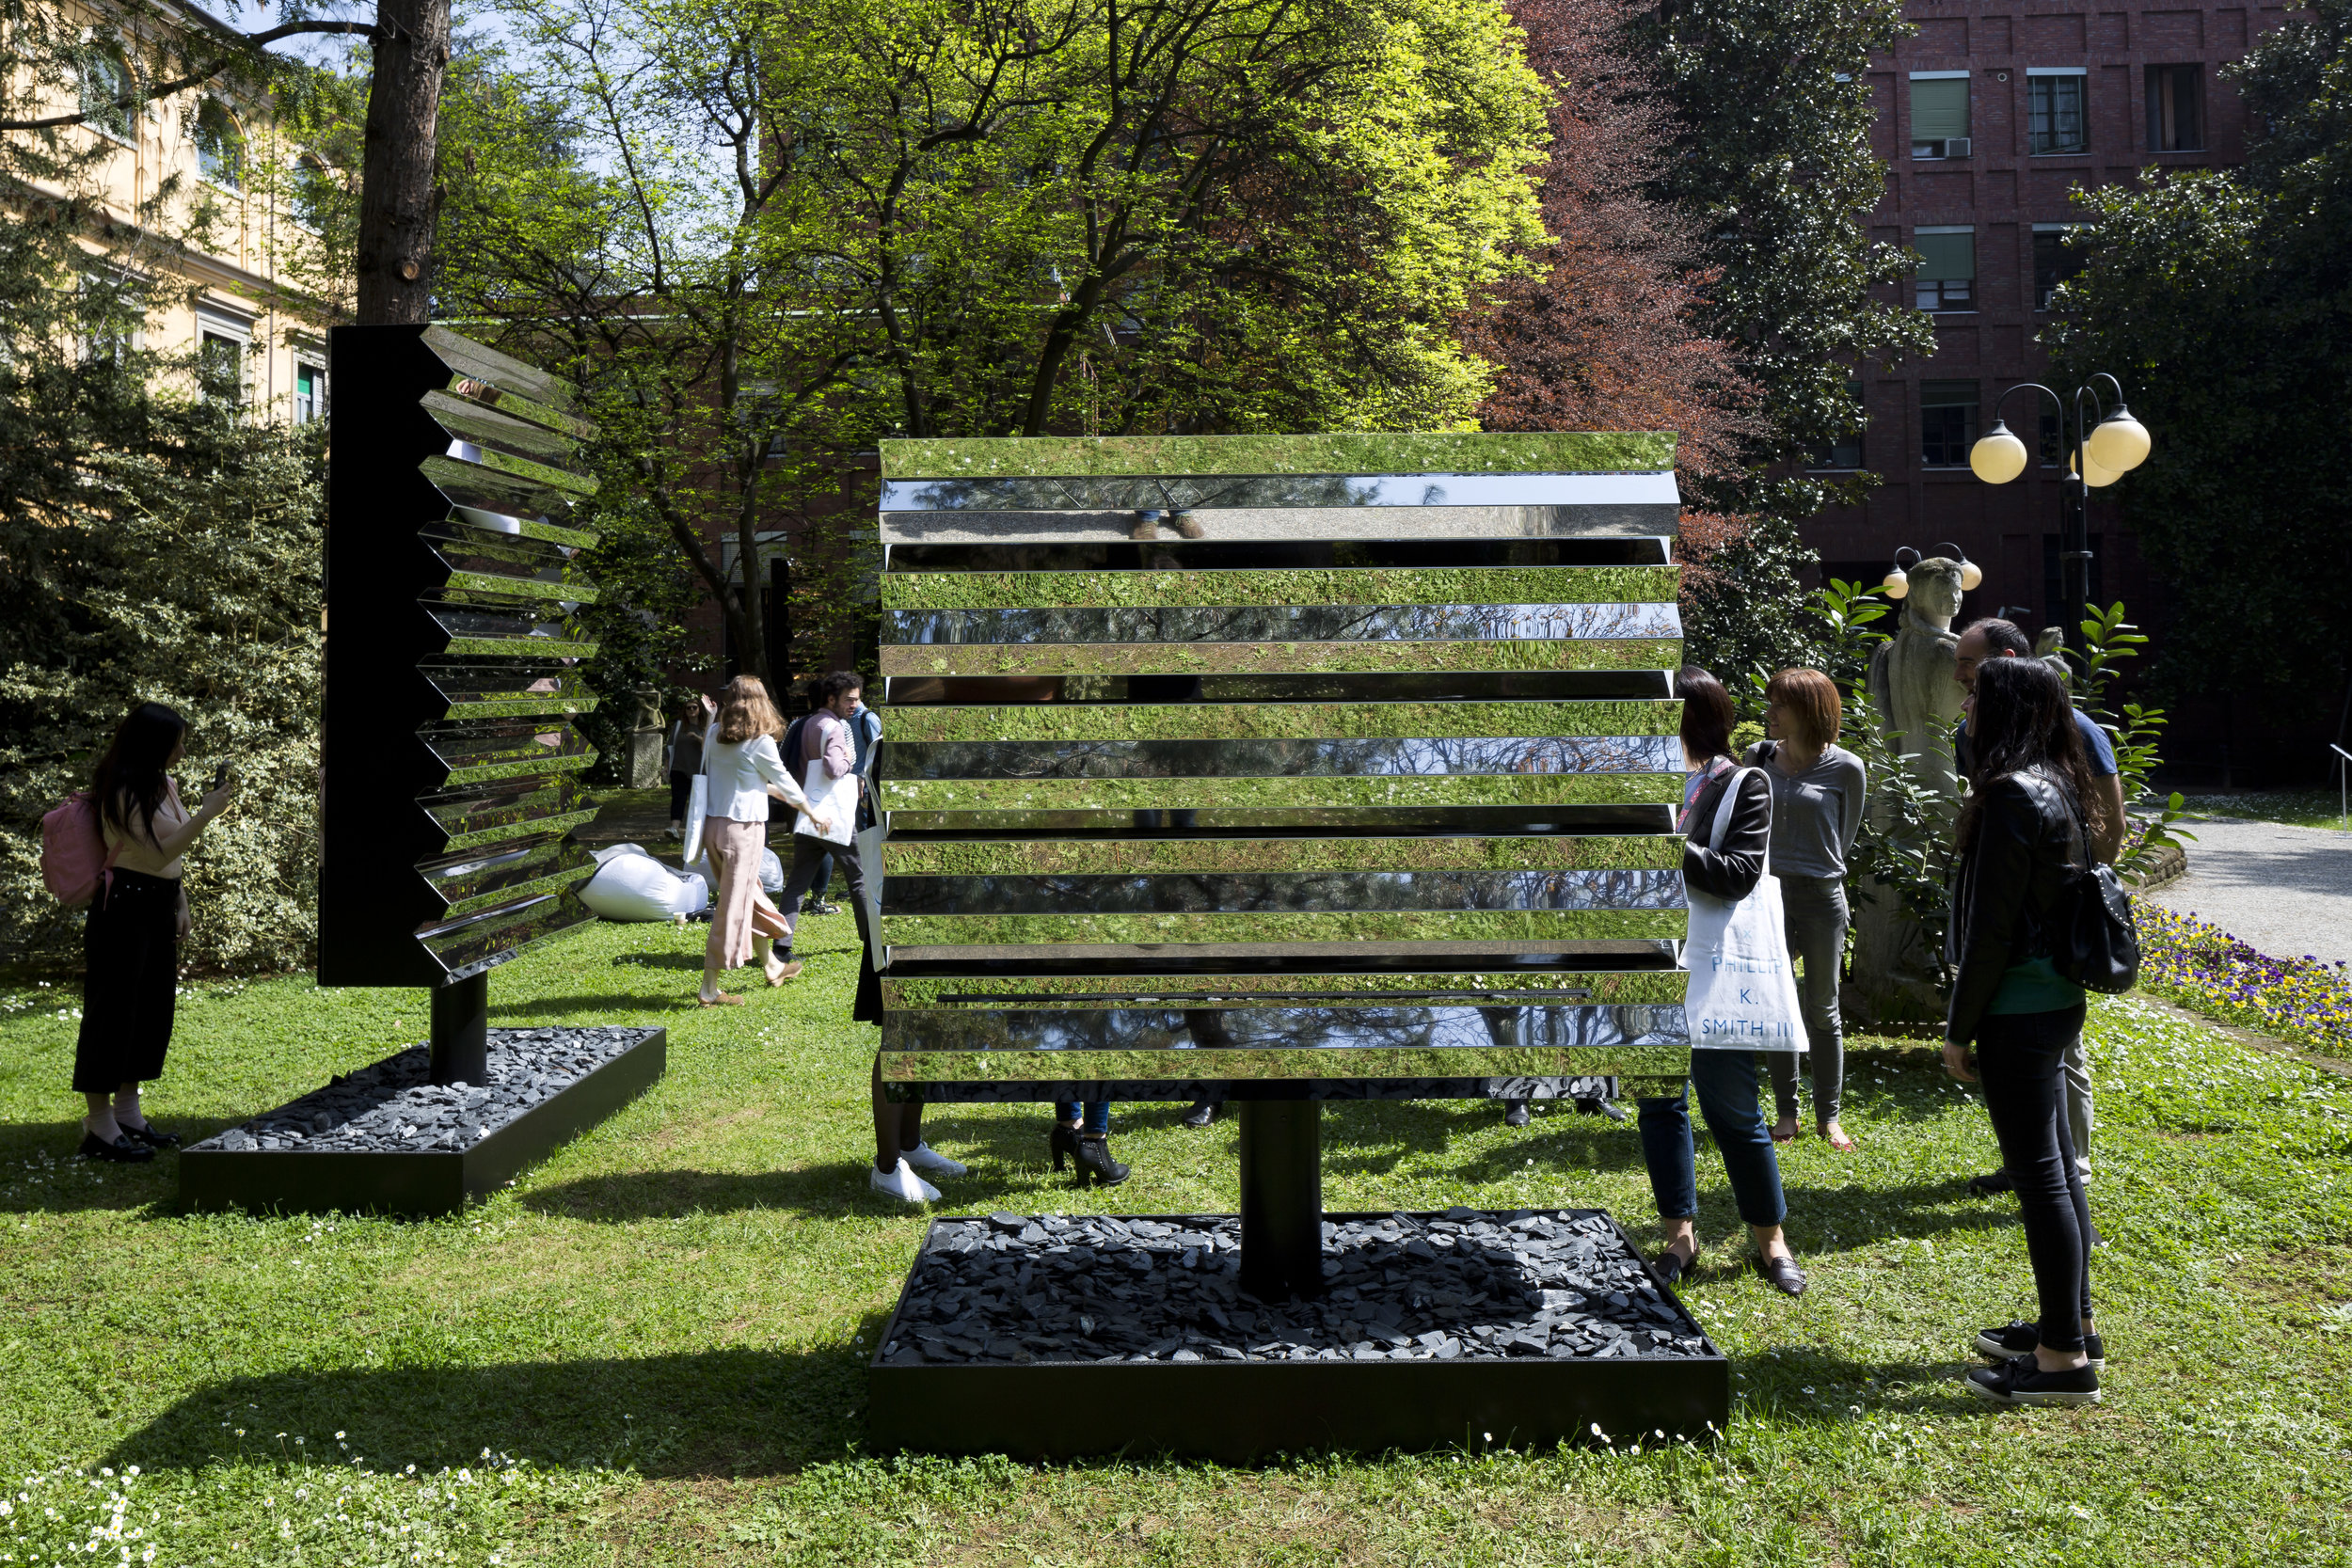 Milan's famous gardens are dotted around the city providing a place to relax during the fair. and the perfect outdoor exhibition venue.